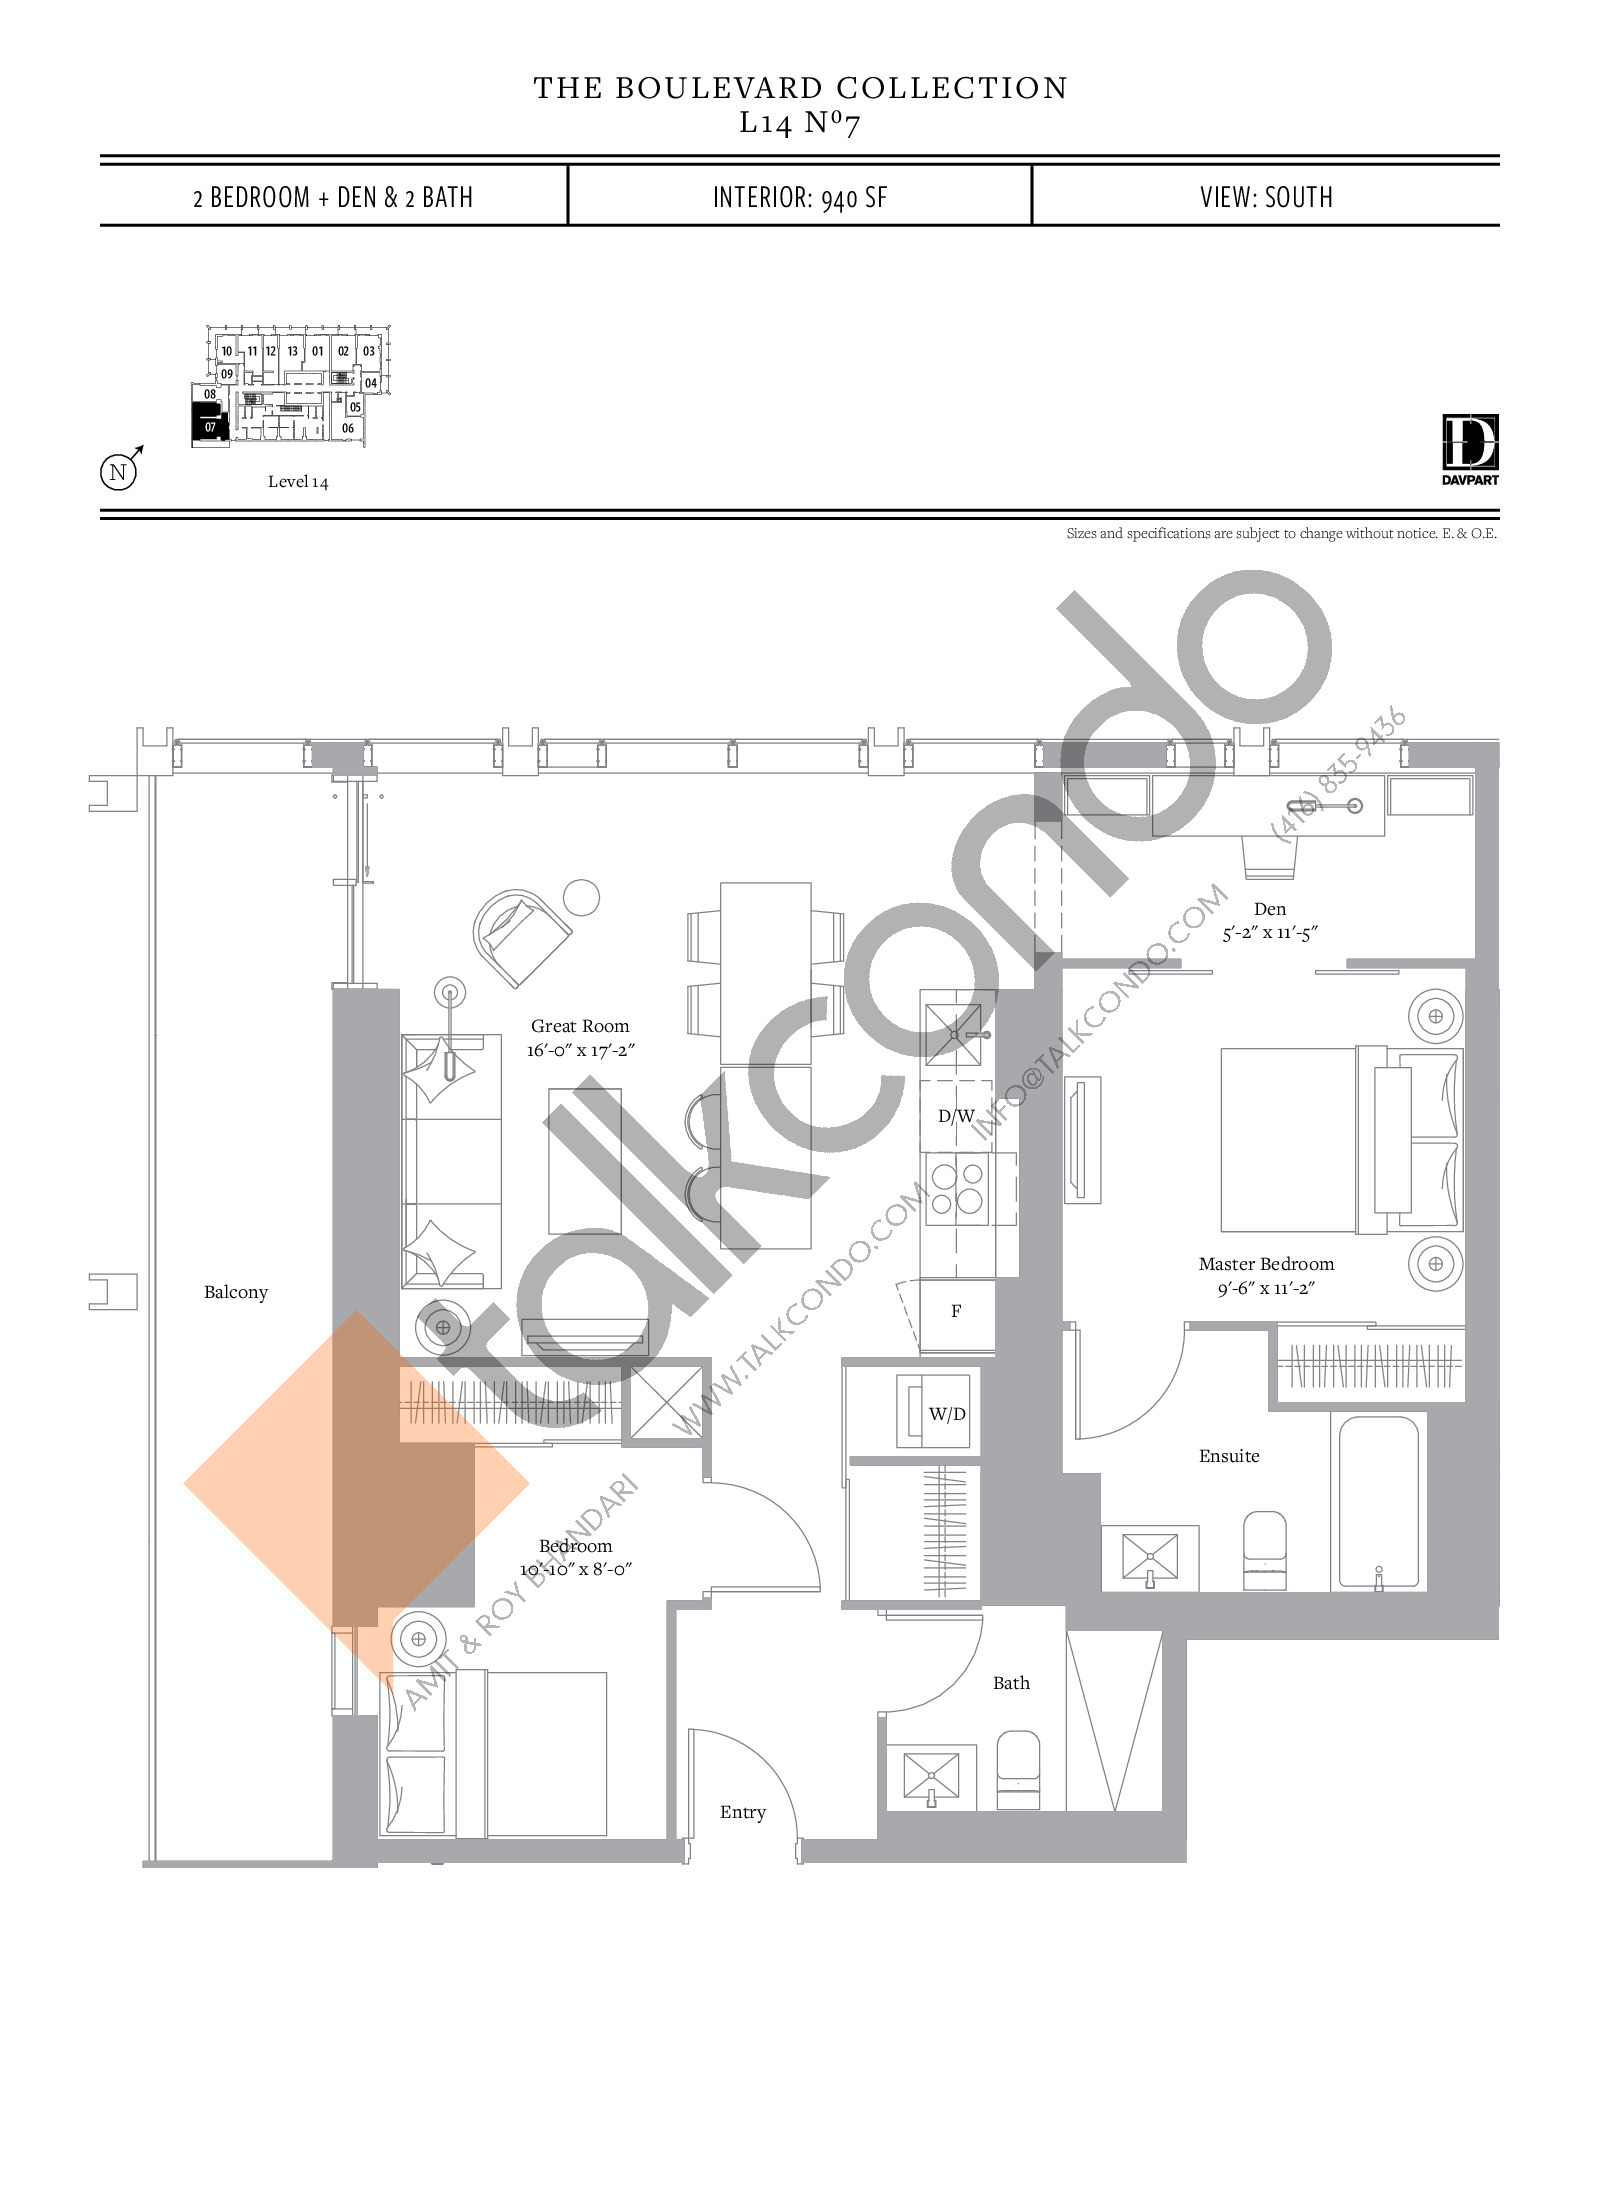 No 7 - The Boulevard Collection Floor Plan at The United Bldg. Condos - 940 sq.ft